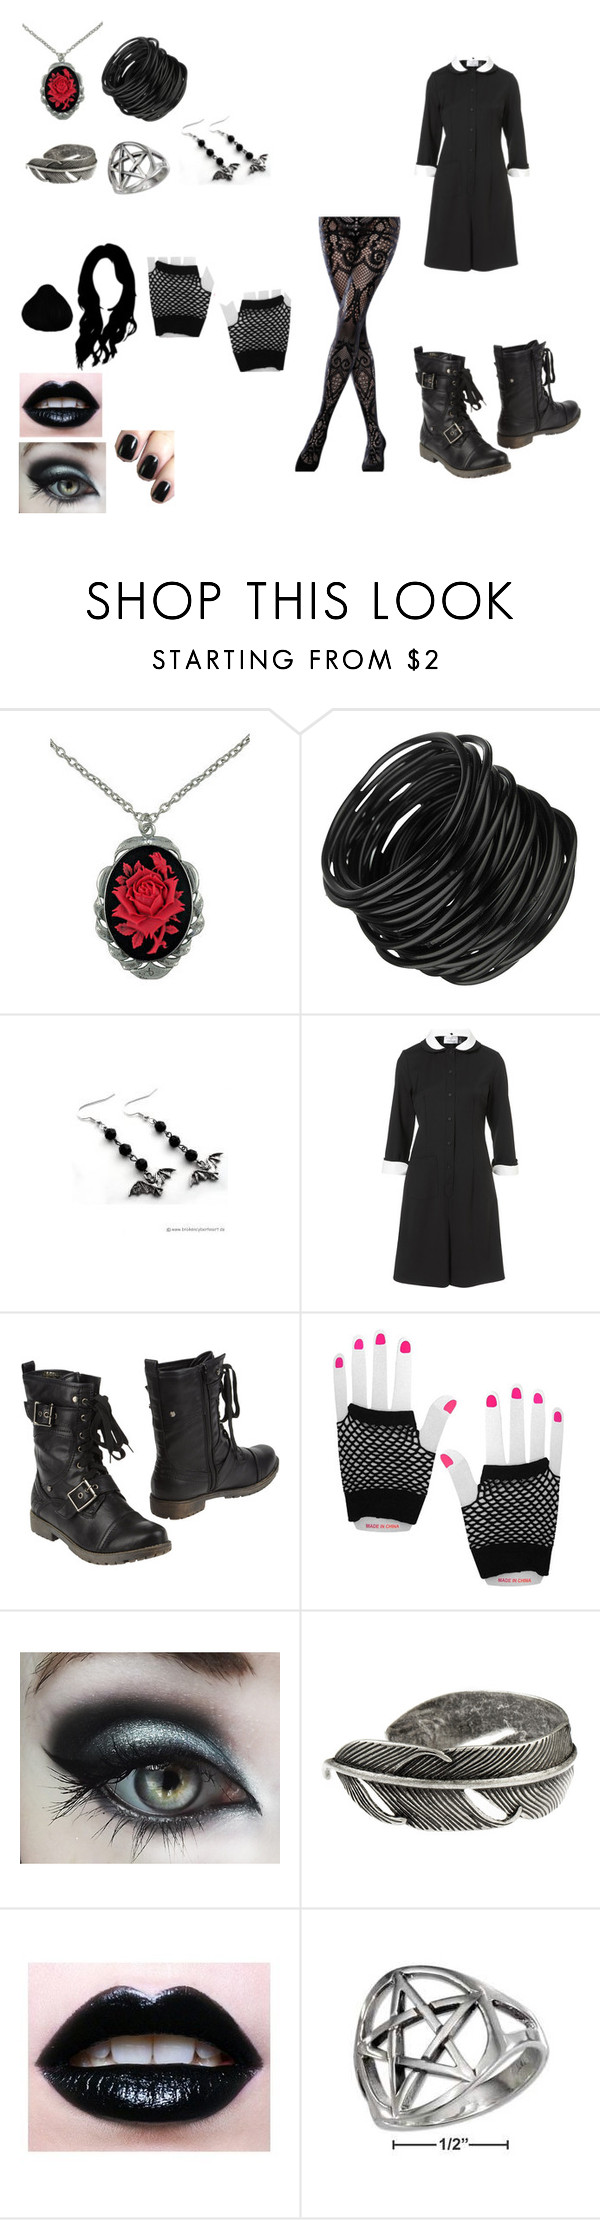 """The New Chapter Begins [SiS]"" by monochromereflections ❤ liked on Polyvore featuring J.W. Anderson, Baci & Abbracci, Just Female, Urban Decay and Emilio Cavallini"